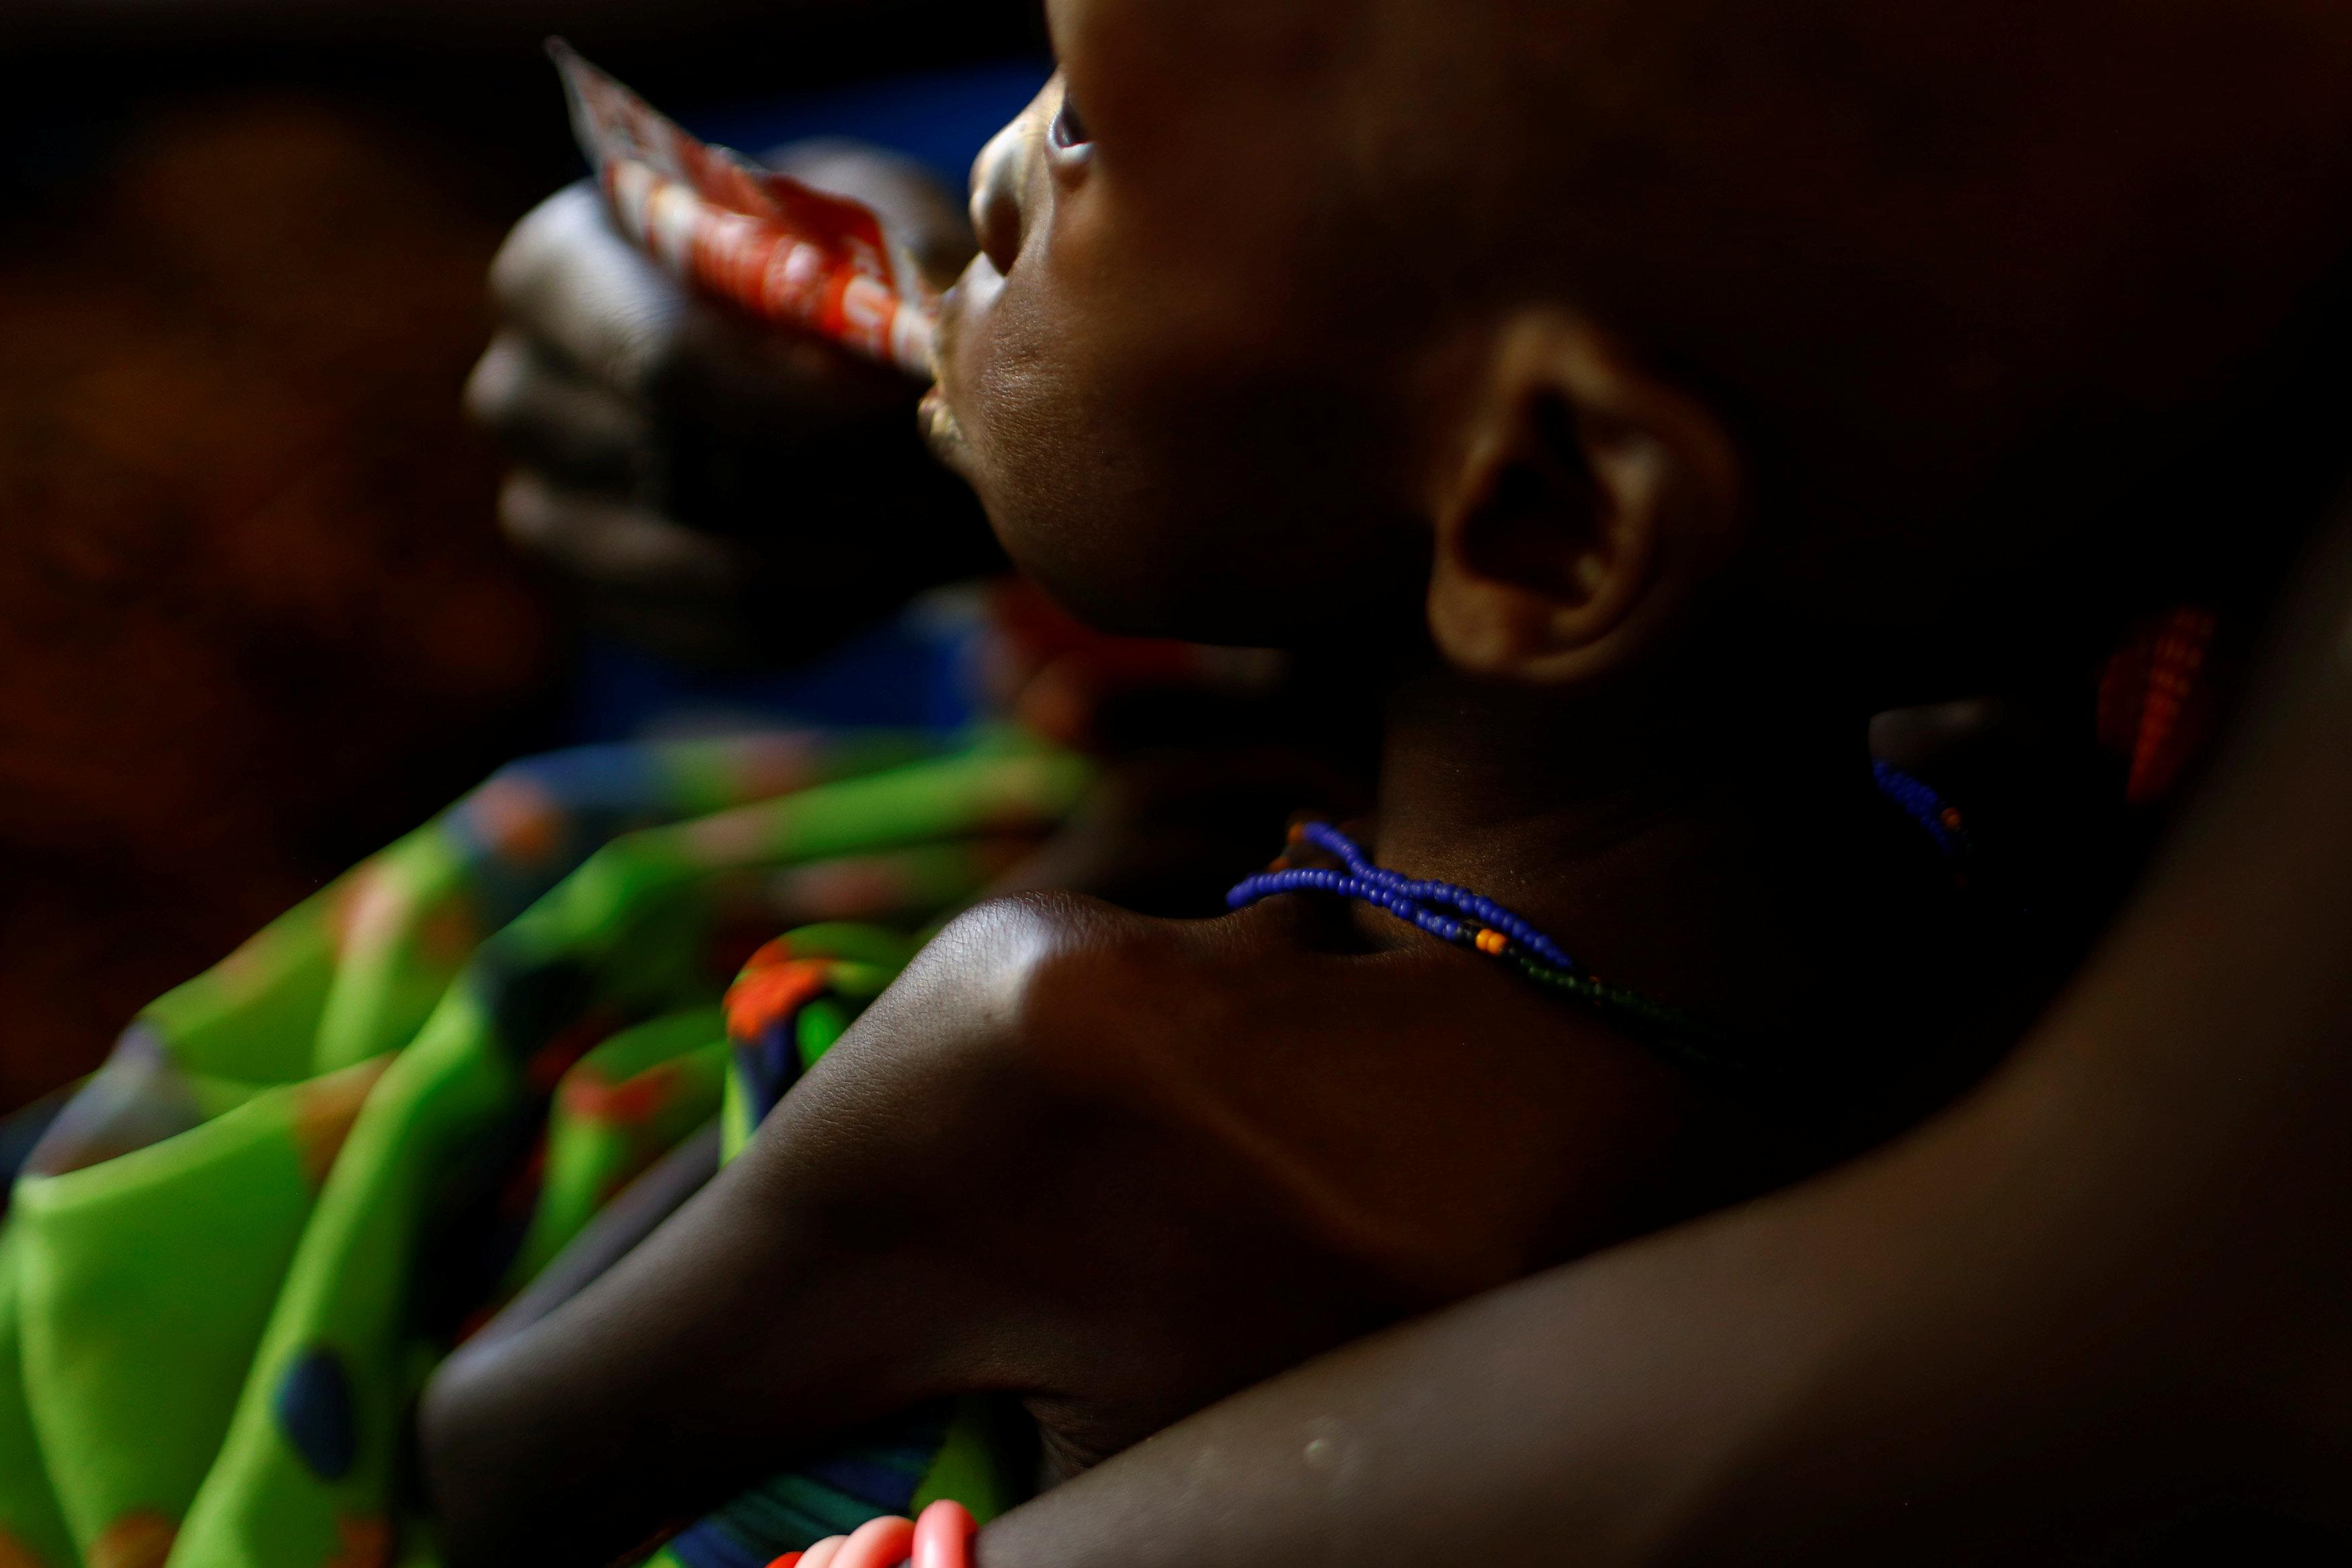 Almost 1.4 million children face 'imminent death' from starvation